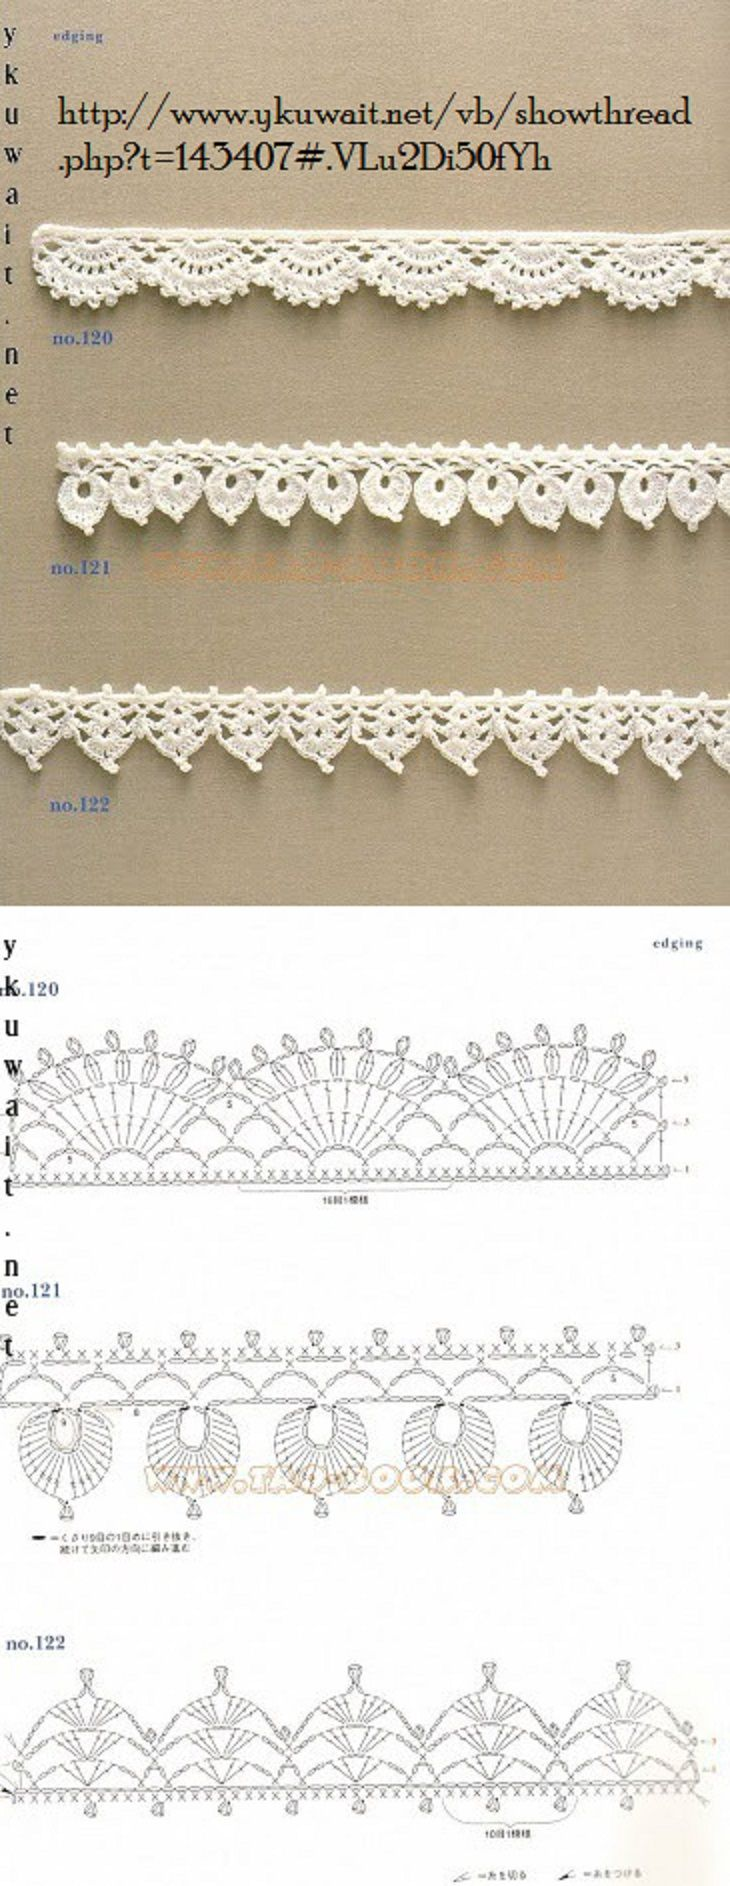 Crochet Lace Pattern For Edging : 893 best Crochet It -- Borders, Edging & Trims images on ...